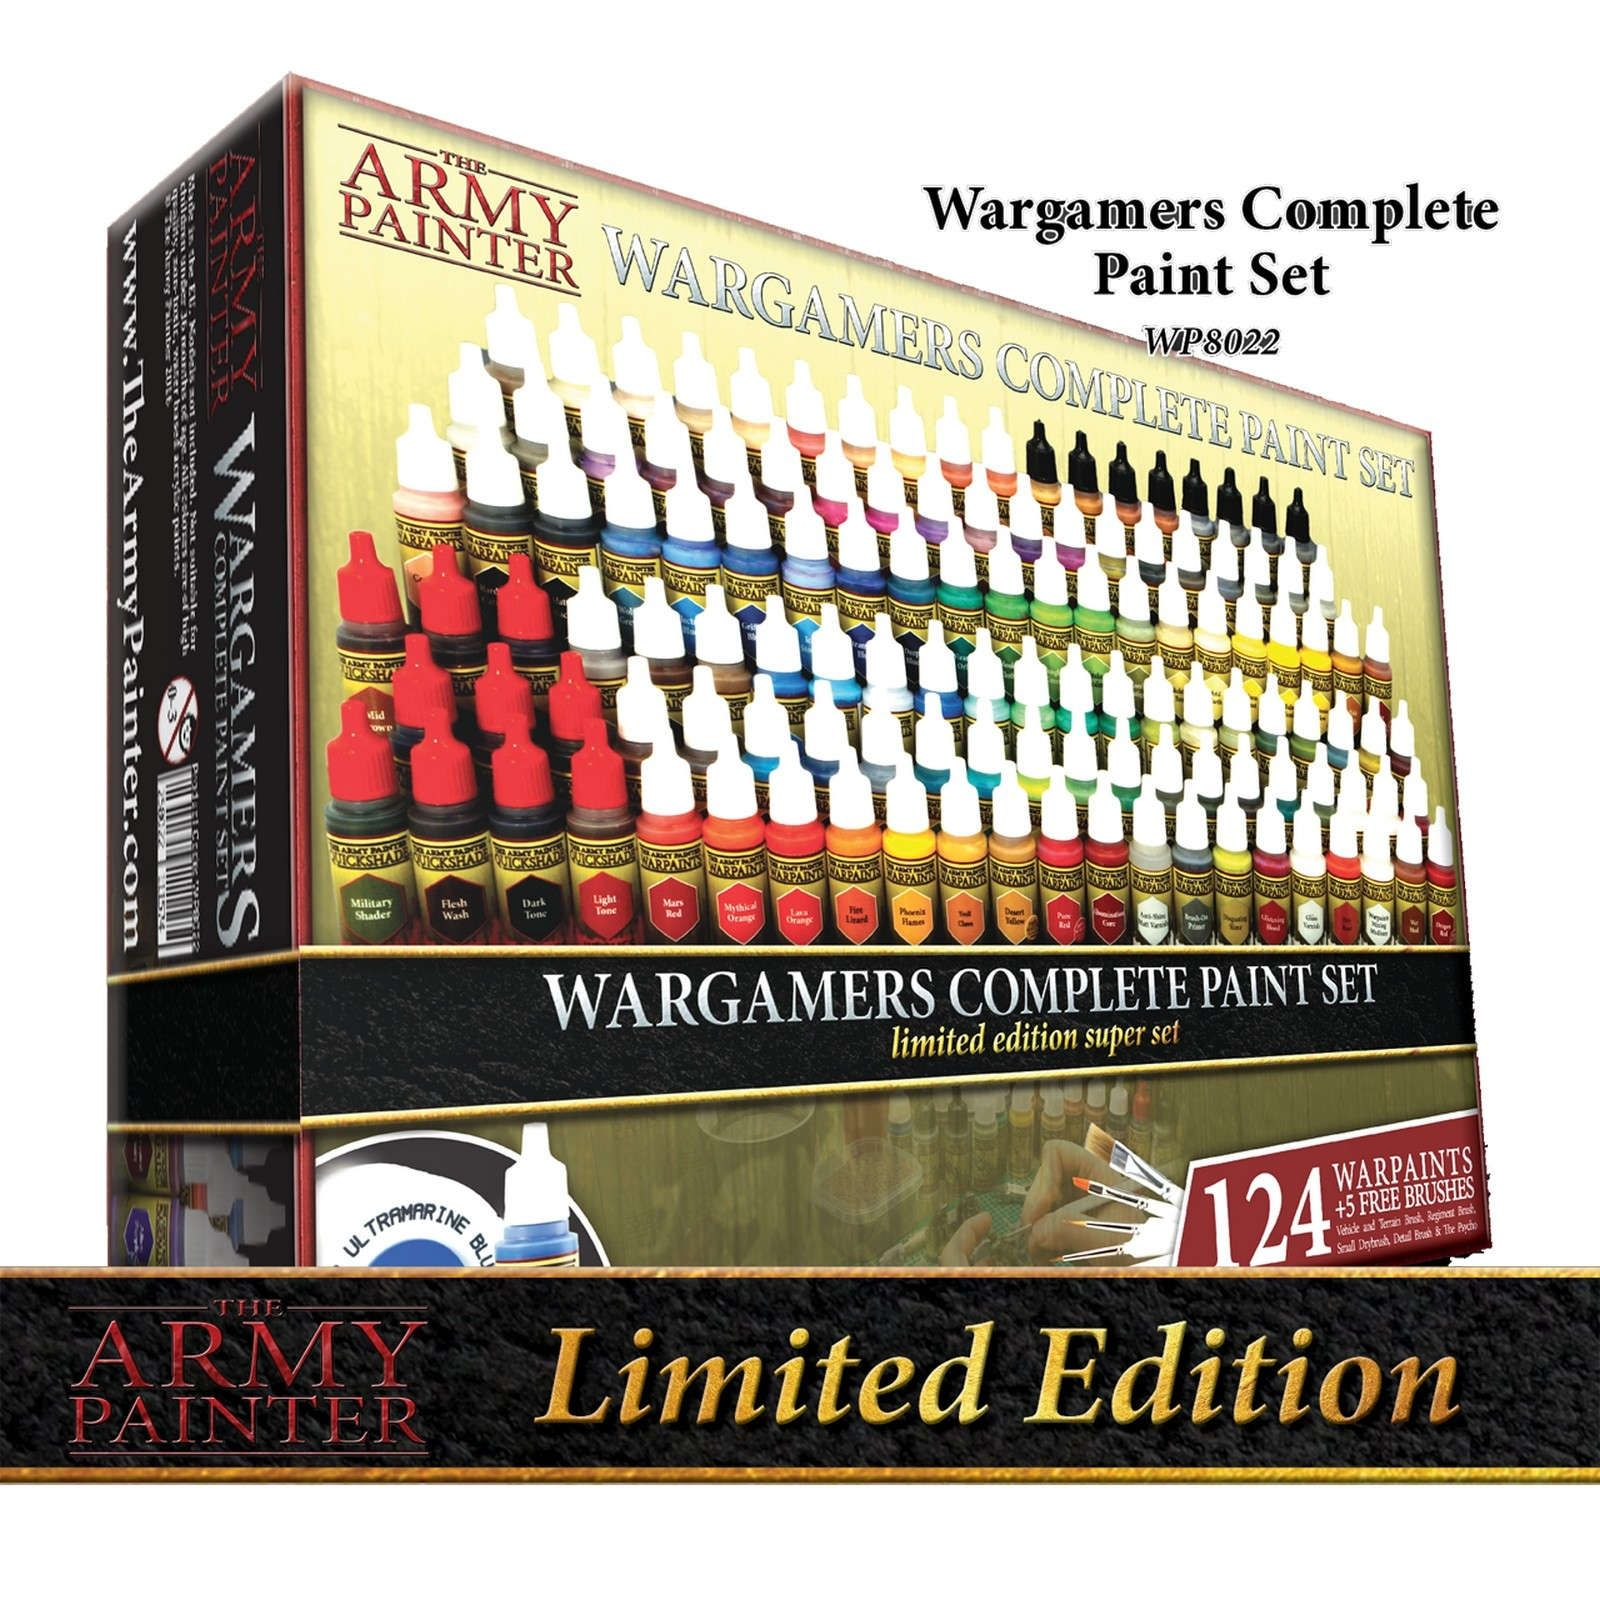 Army Painter Warpaints Complete Paint Set